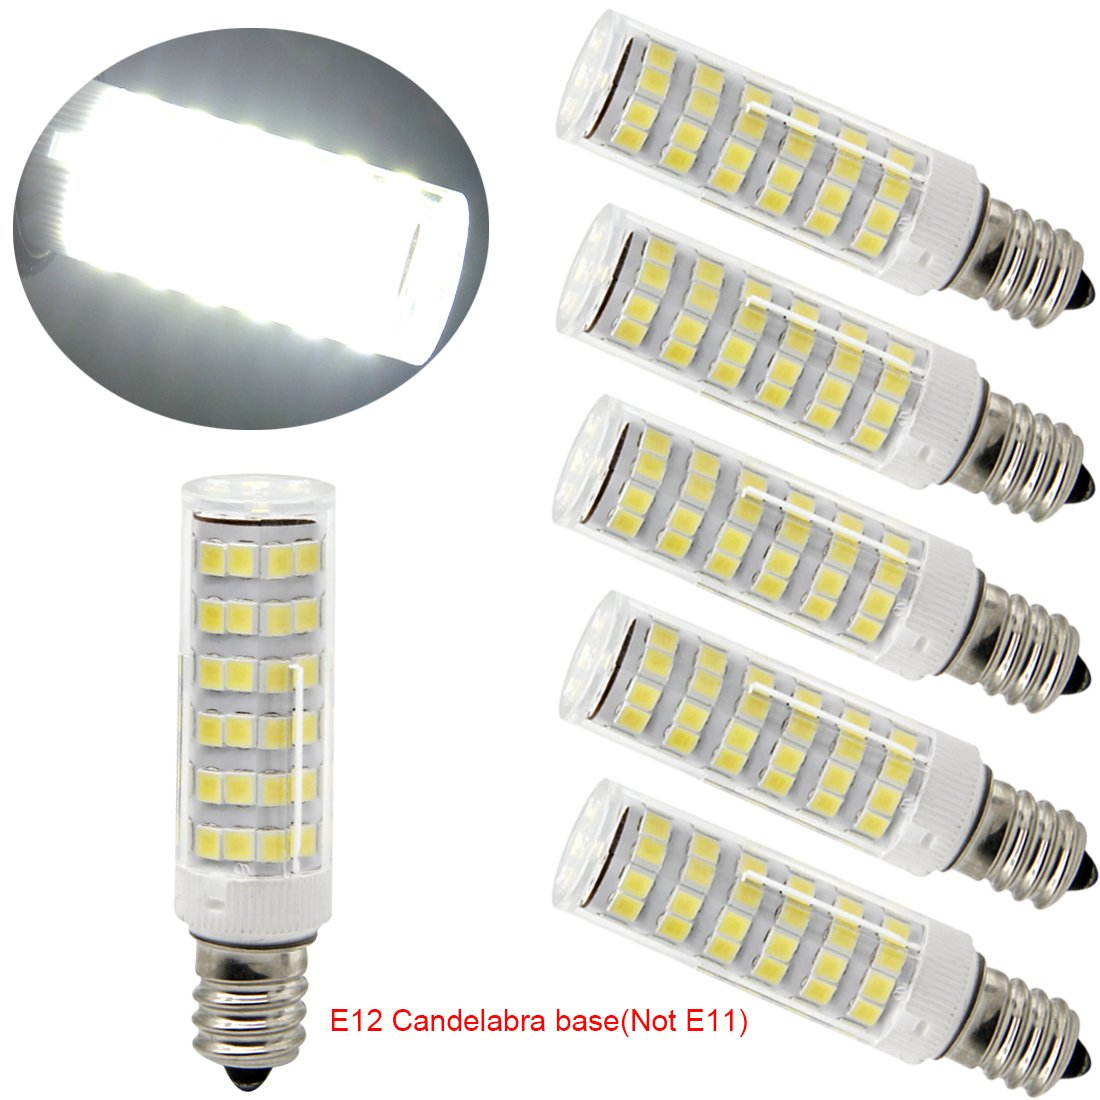 conair lighted mirror bulb replacement instructions